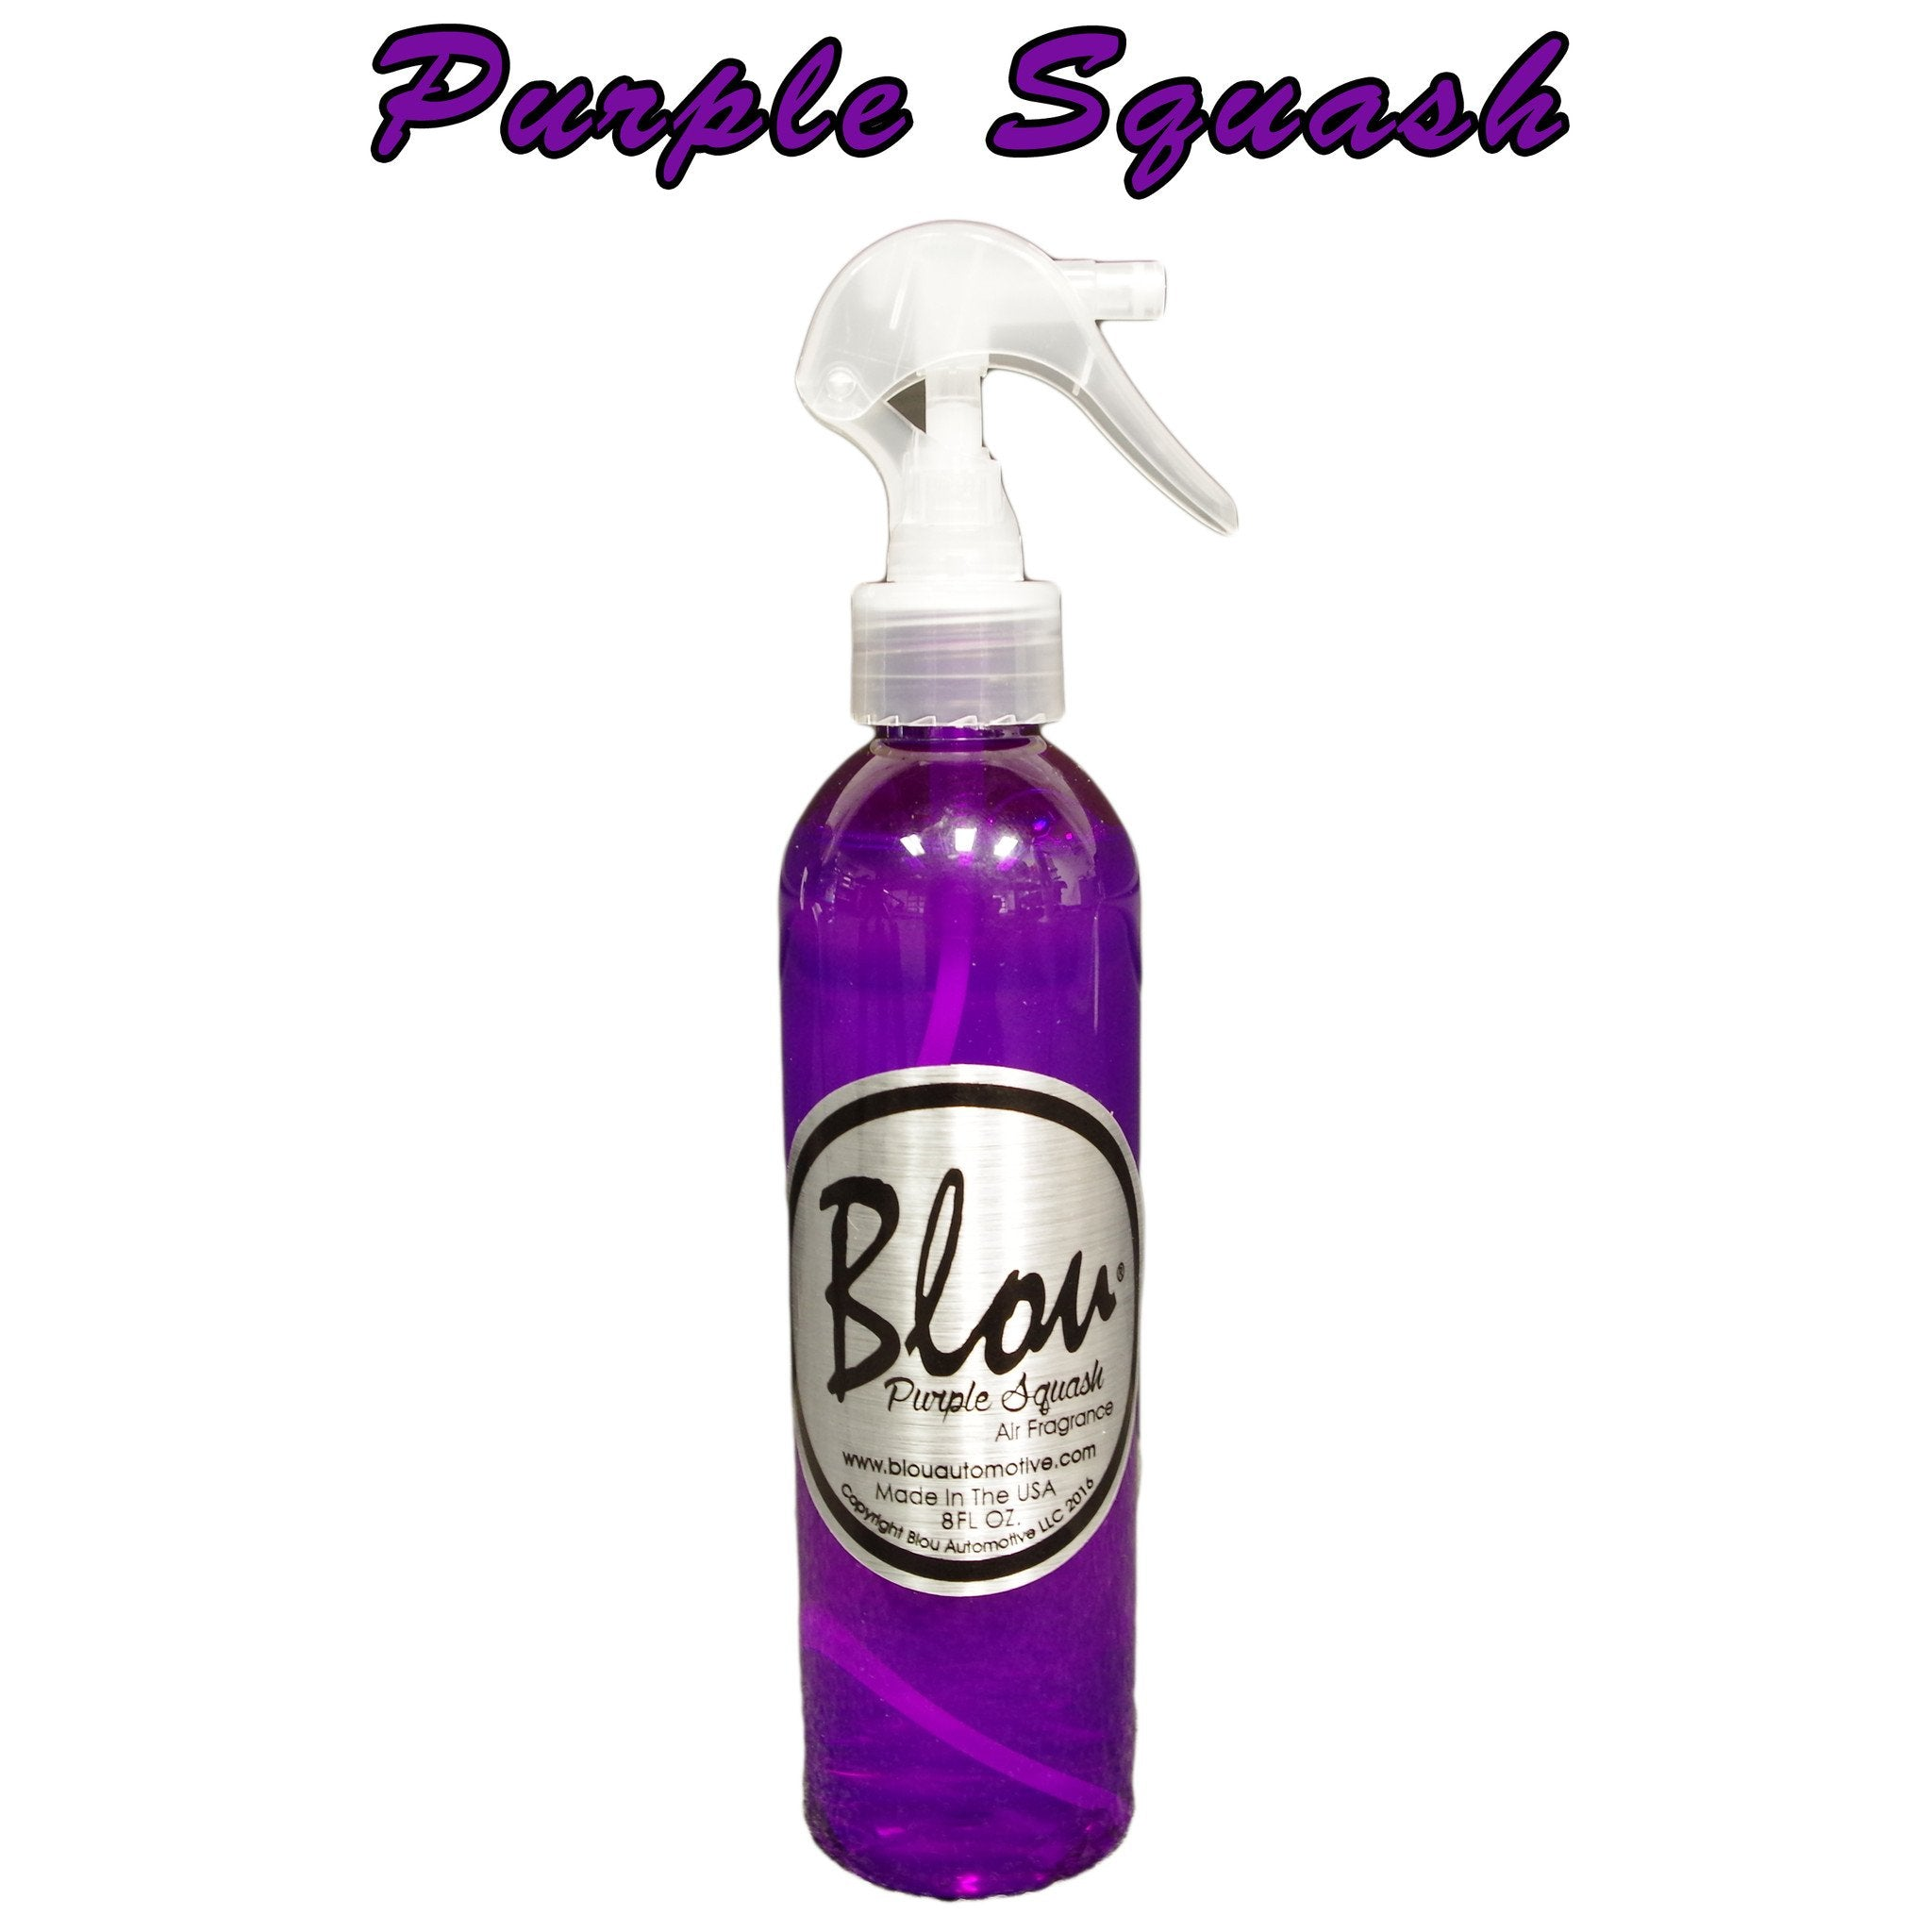 Load image into Gallery viewer, Blou Purple Squash Luxury Air Fragrance